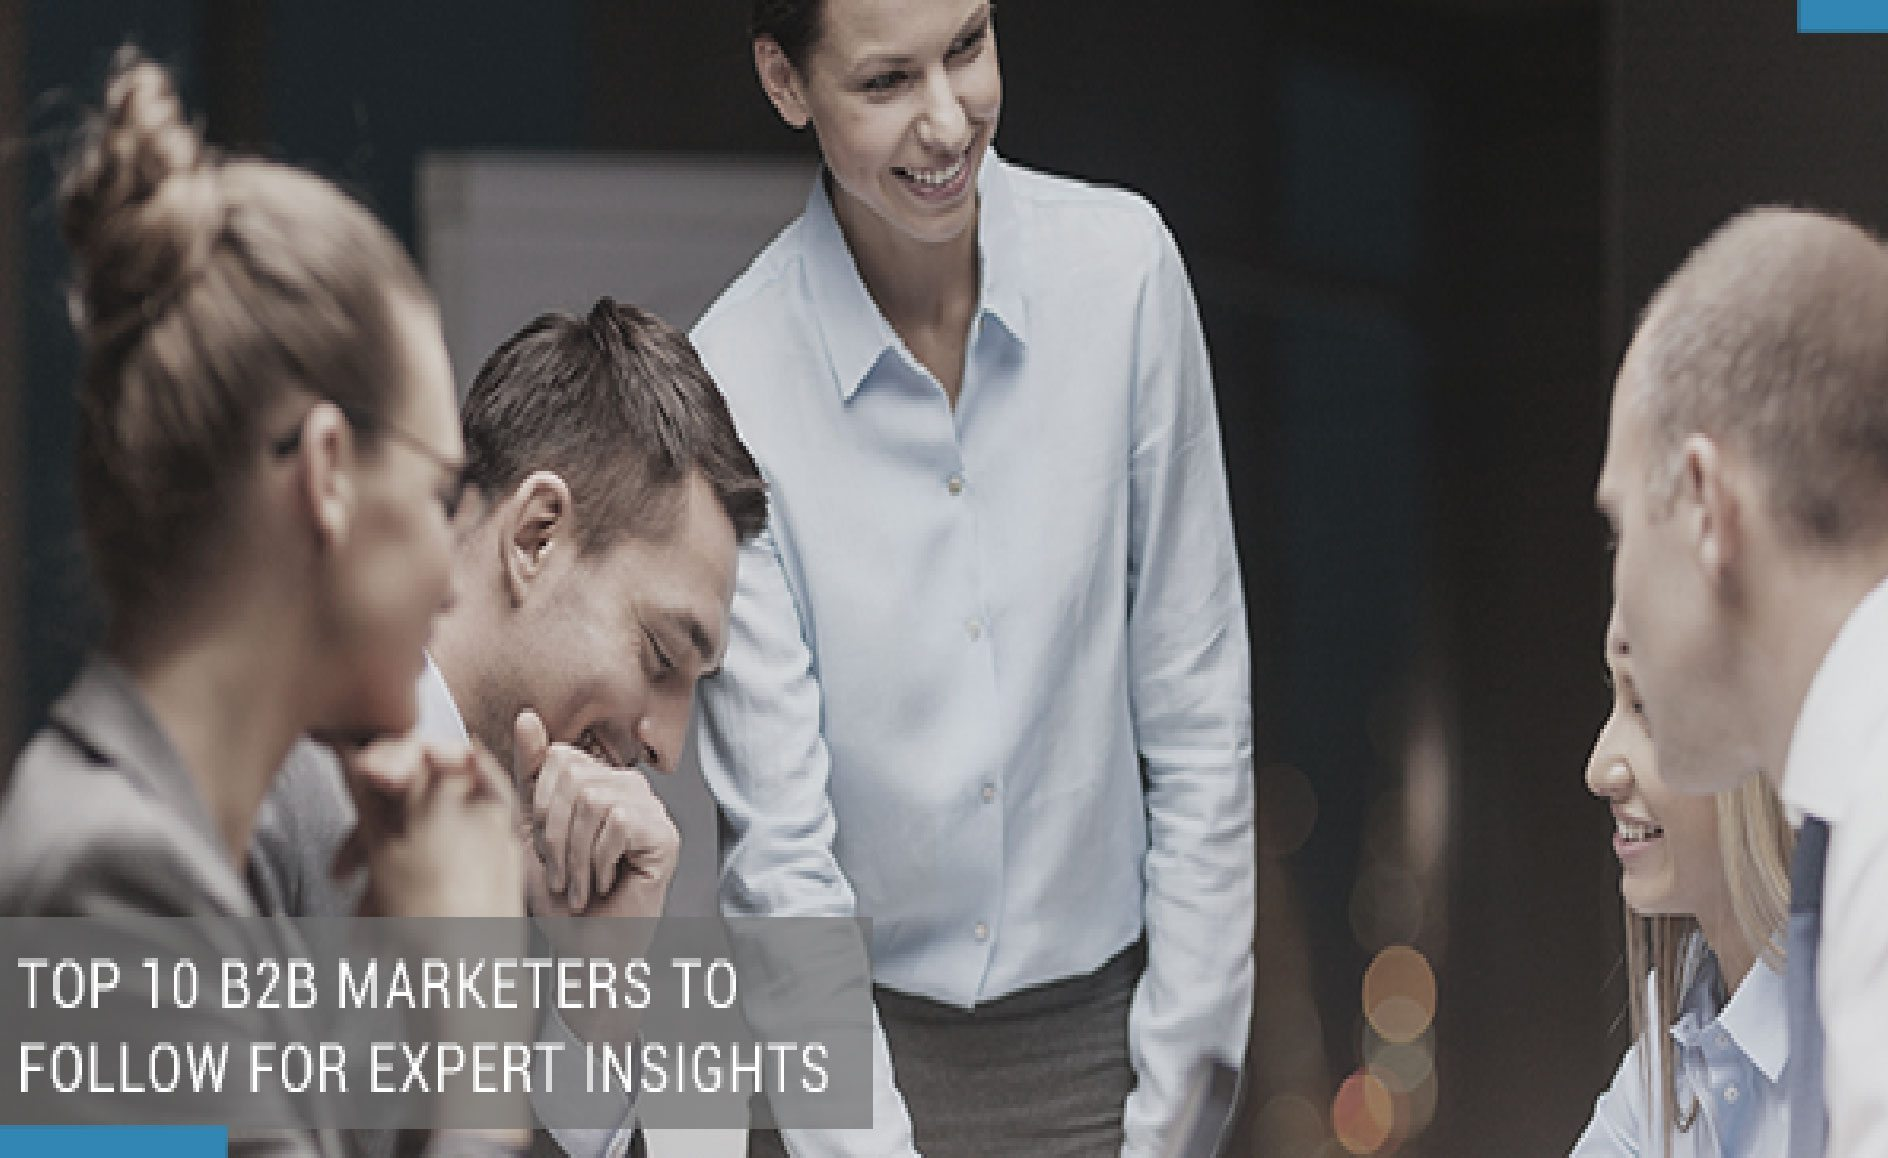 Top 10 B2B Marketers to Follow for Expert Insights